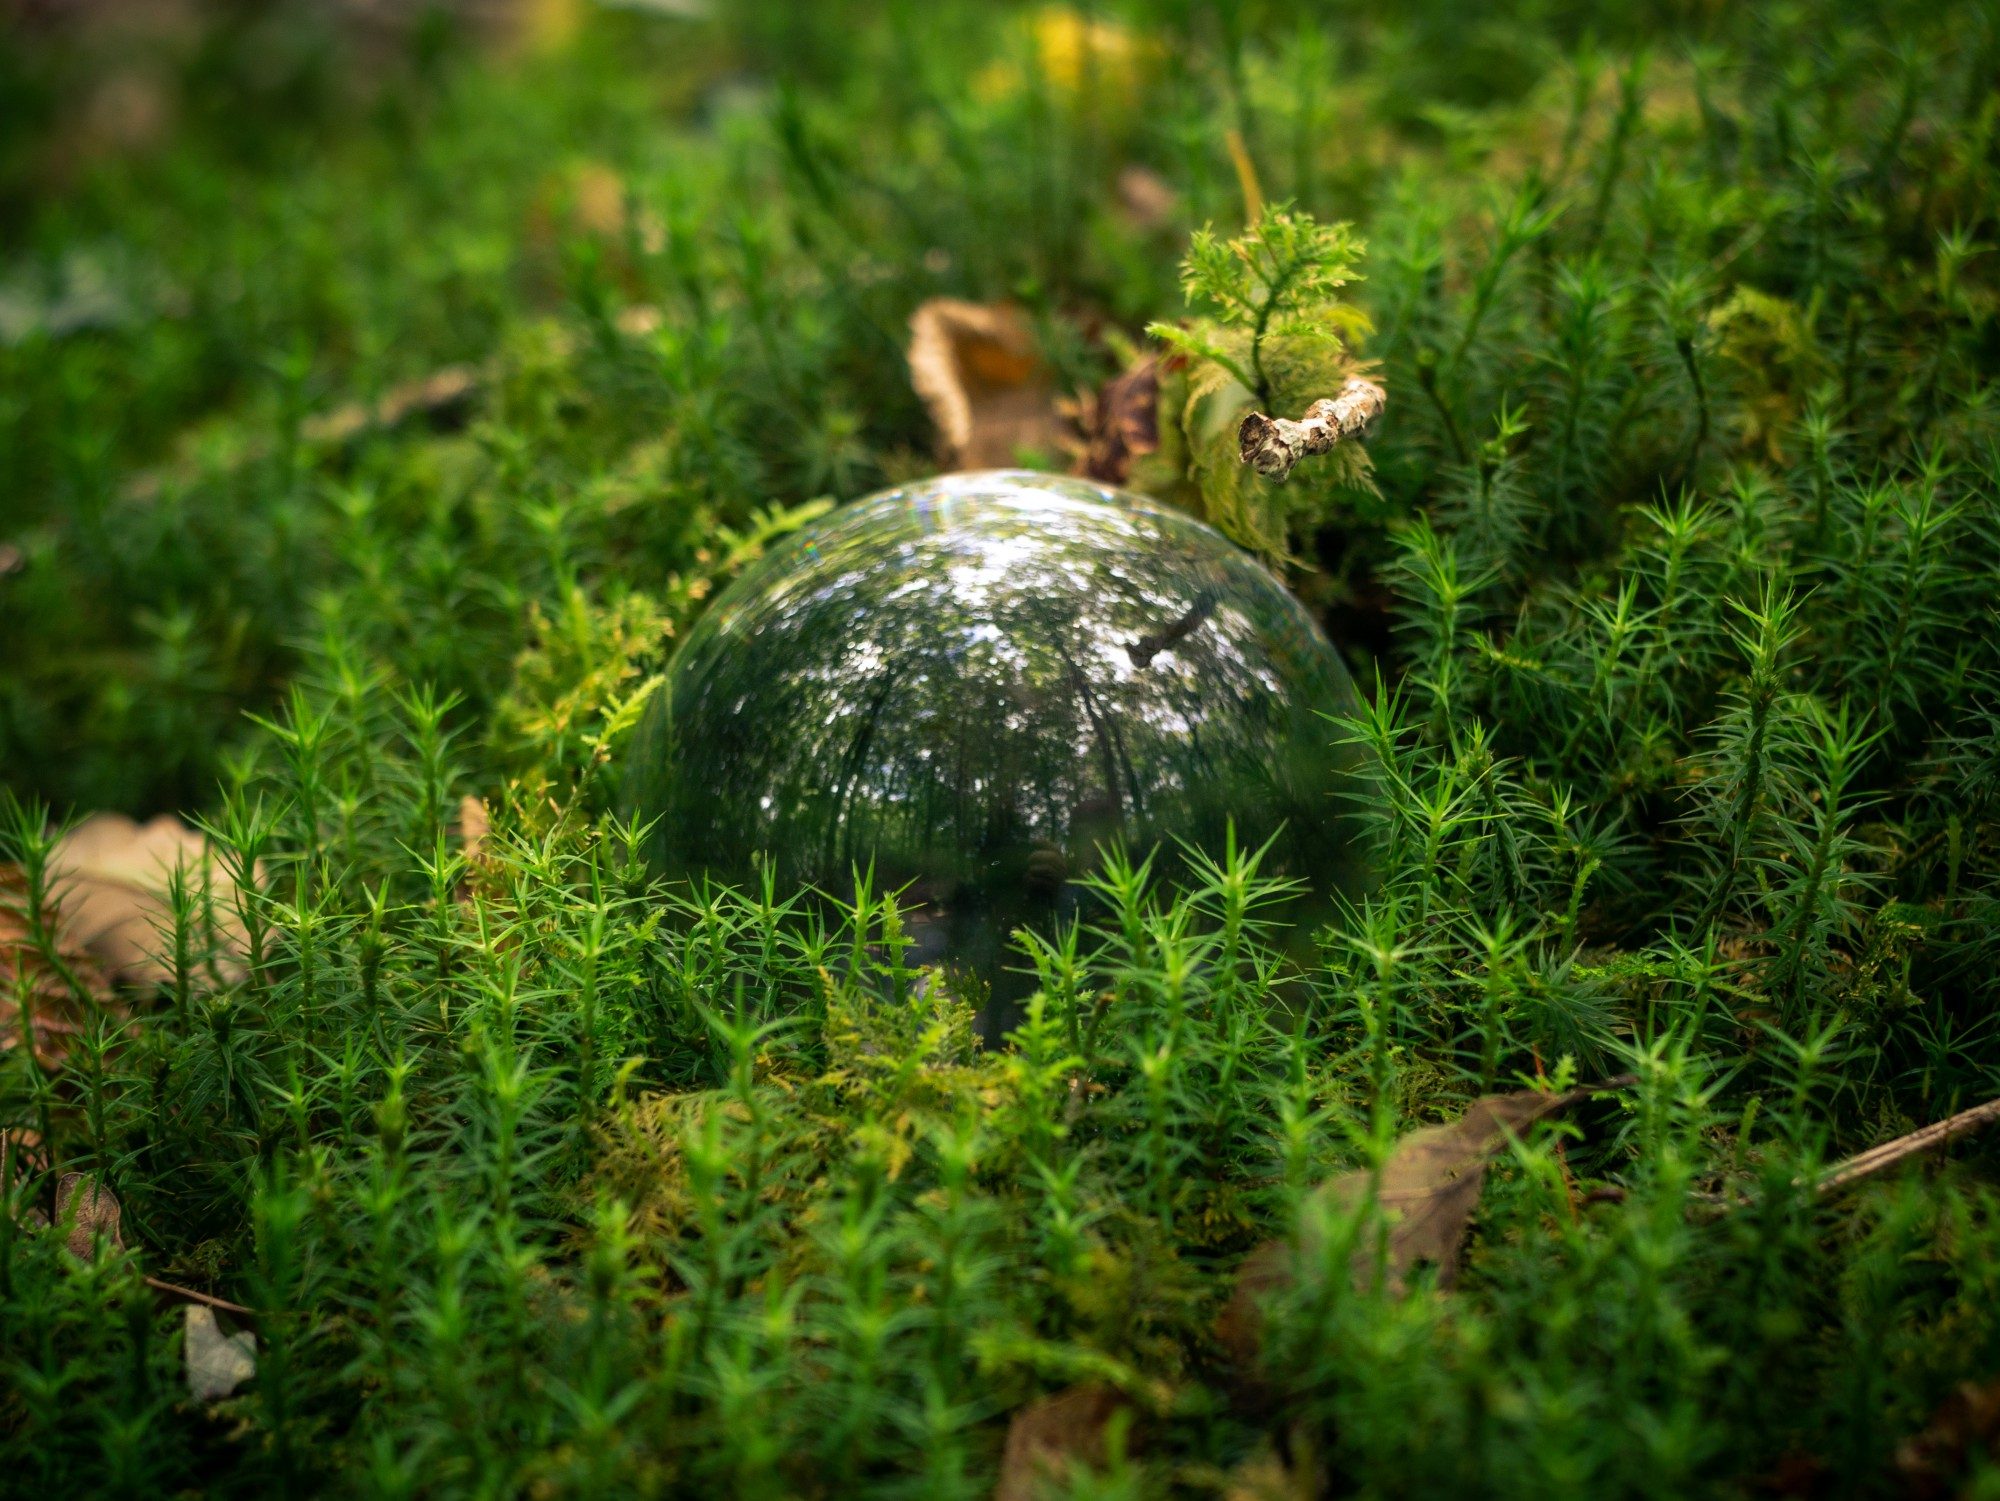 Forêt de Brocéliande - Lensball Bretagne, France